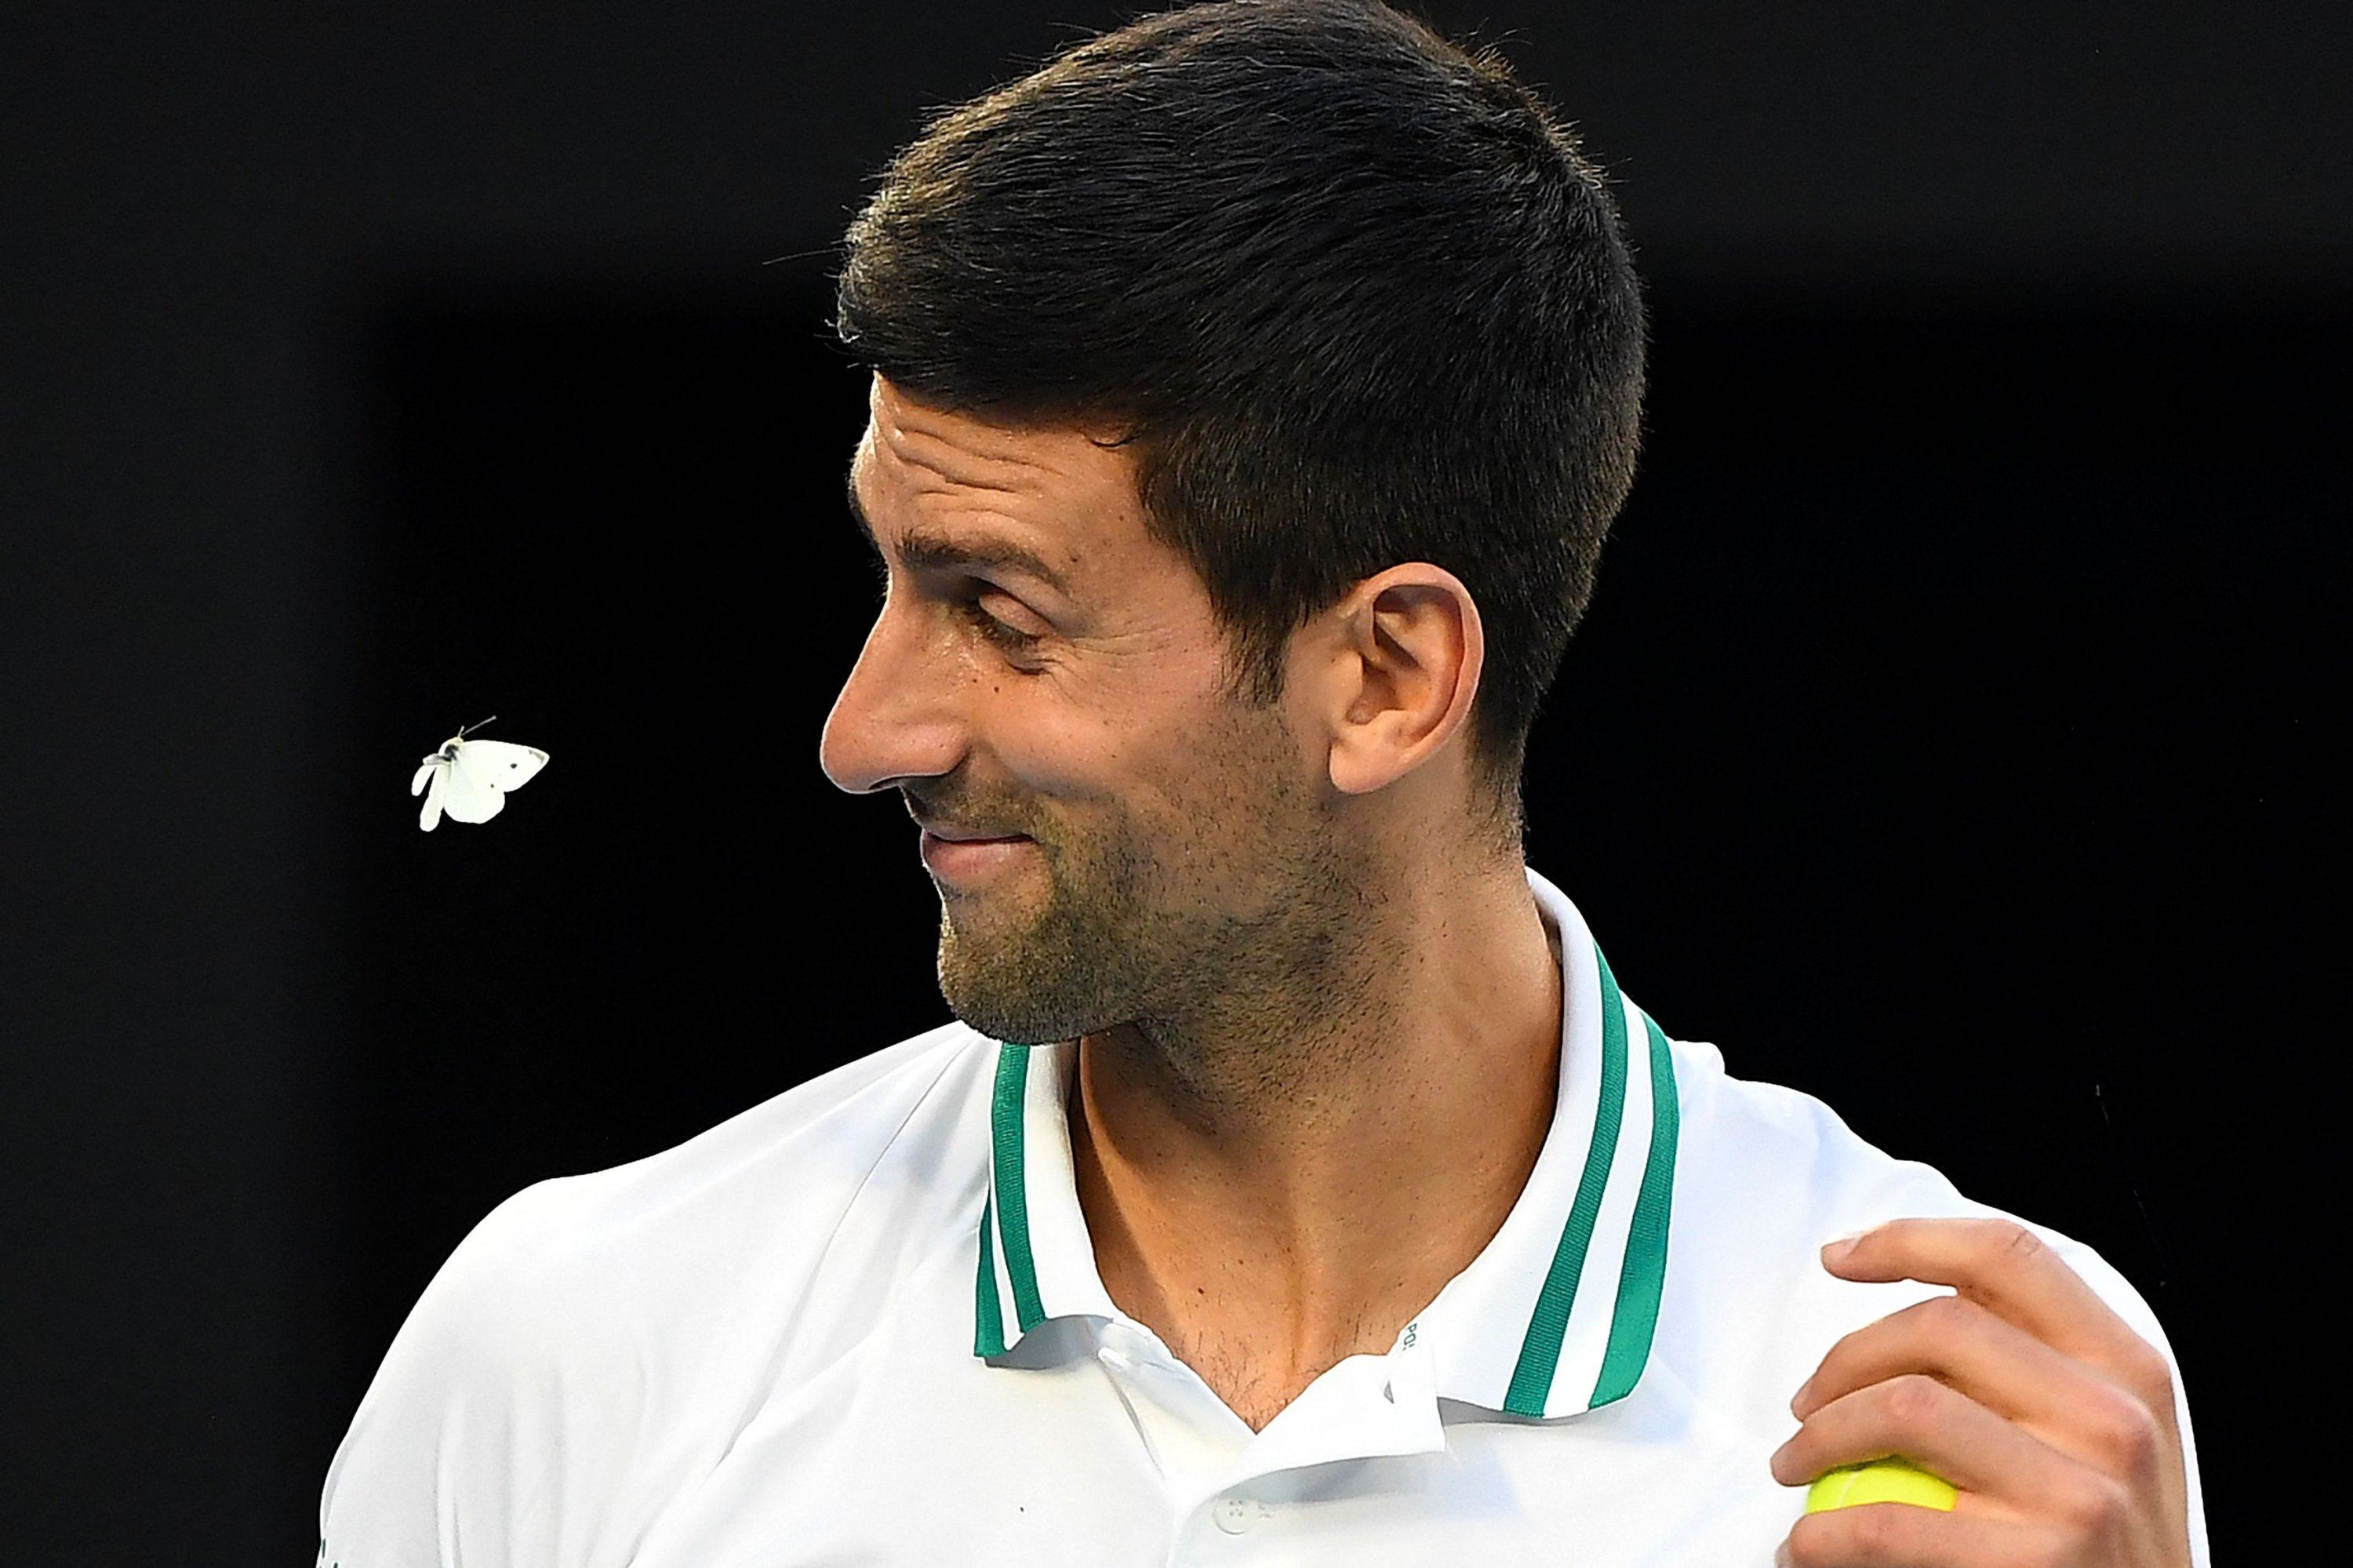 Novak Djokovic of Serbia deals with a butterfly as he prepares to serve against Russia's Aslan Karatsev during their Australian Open men's singles semifinal in Melbourne, Australia, Feb. 18, 2021. (AFP Photo)